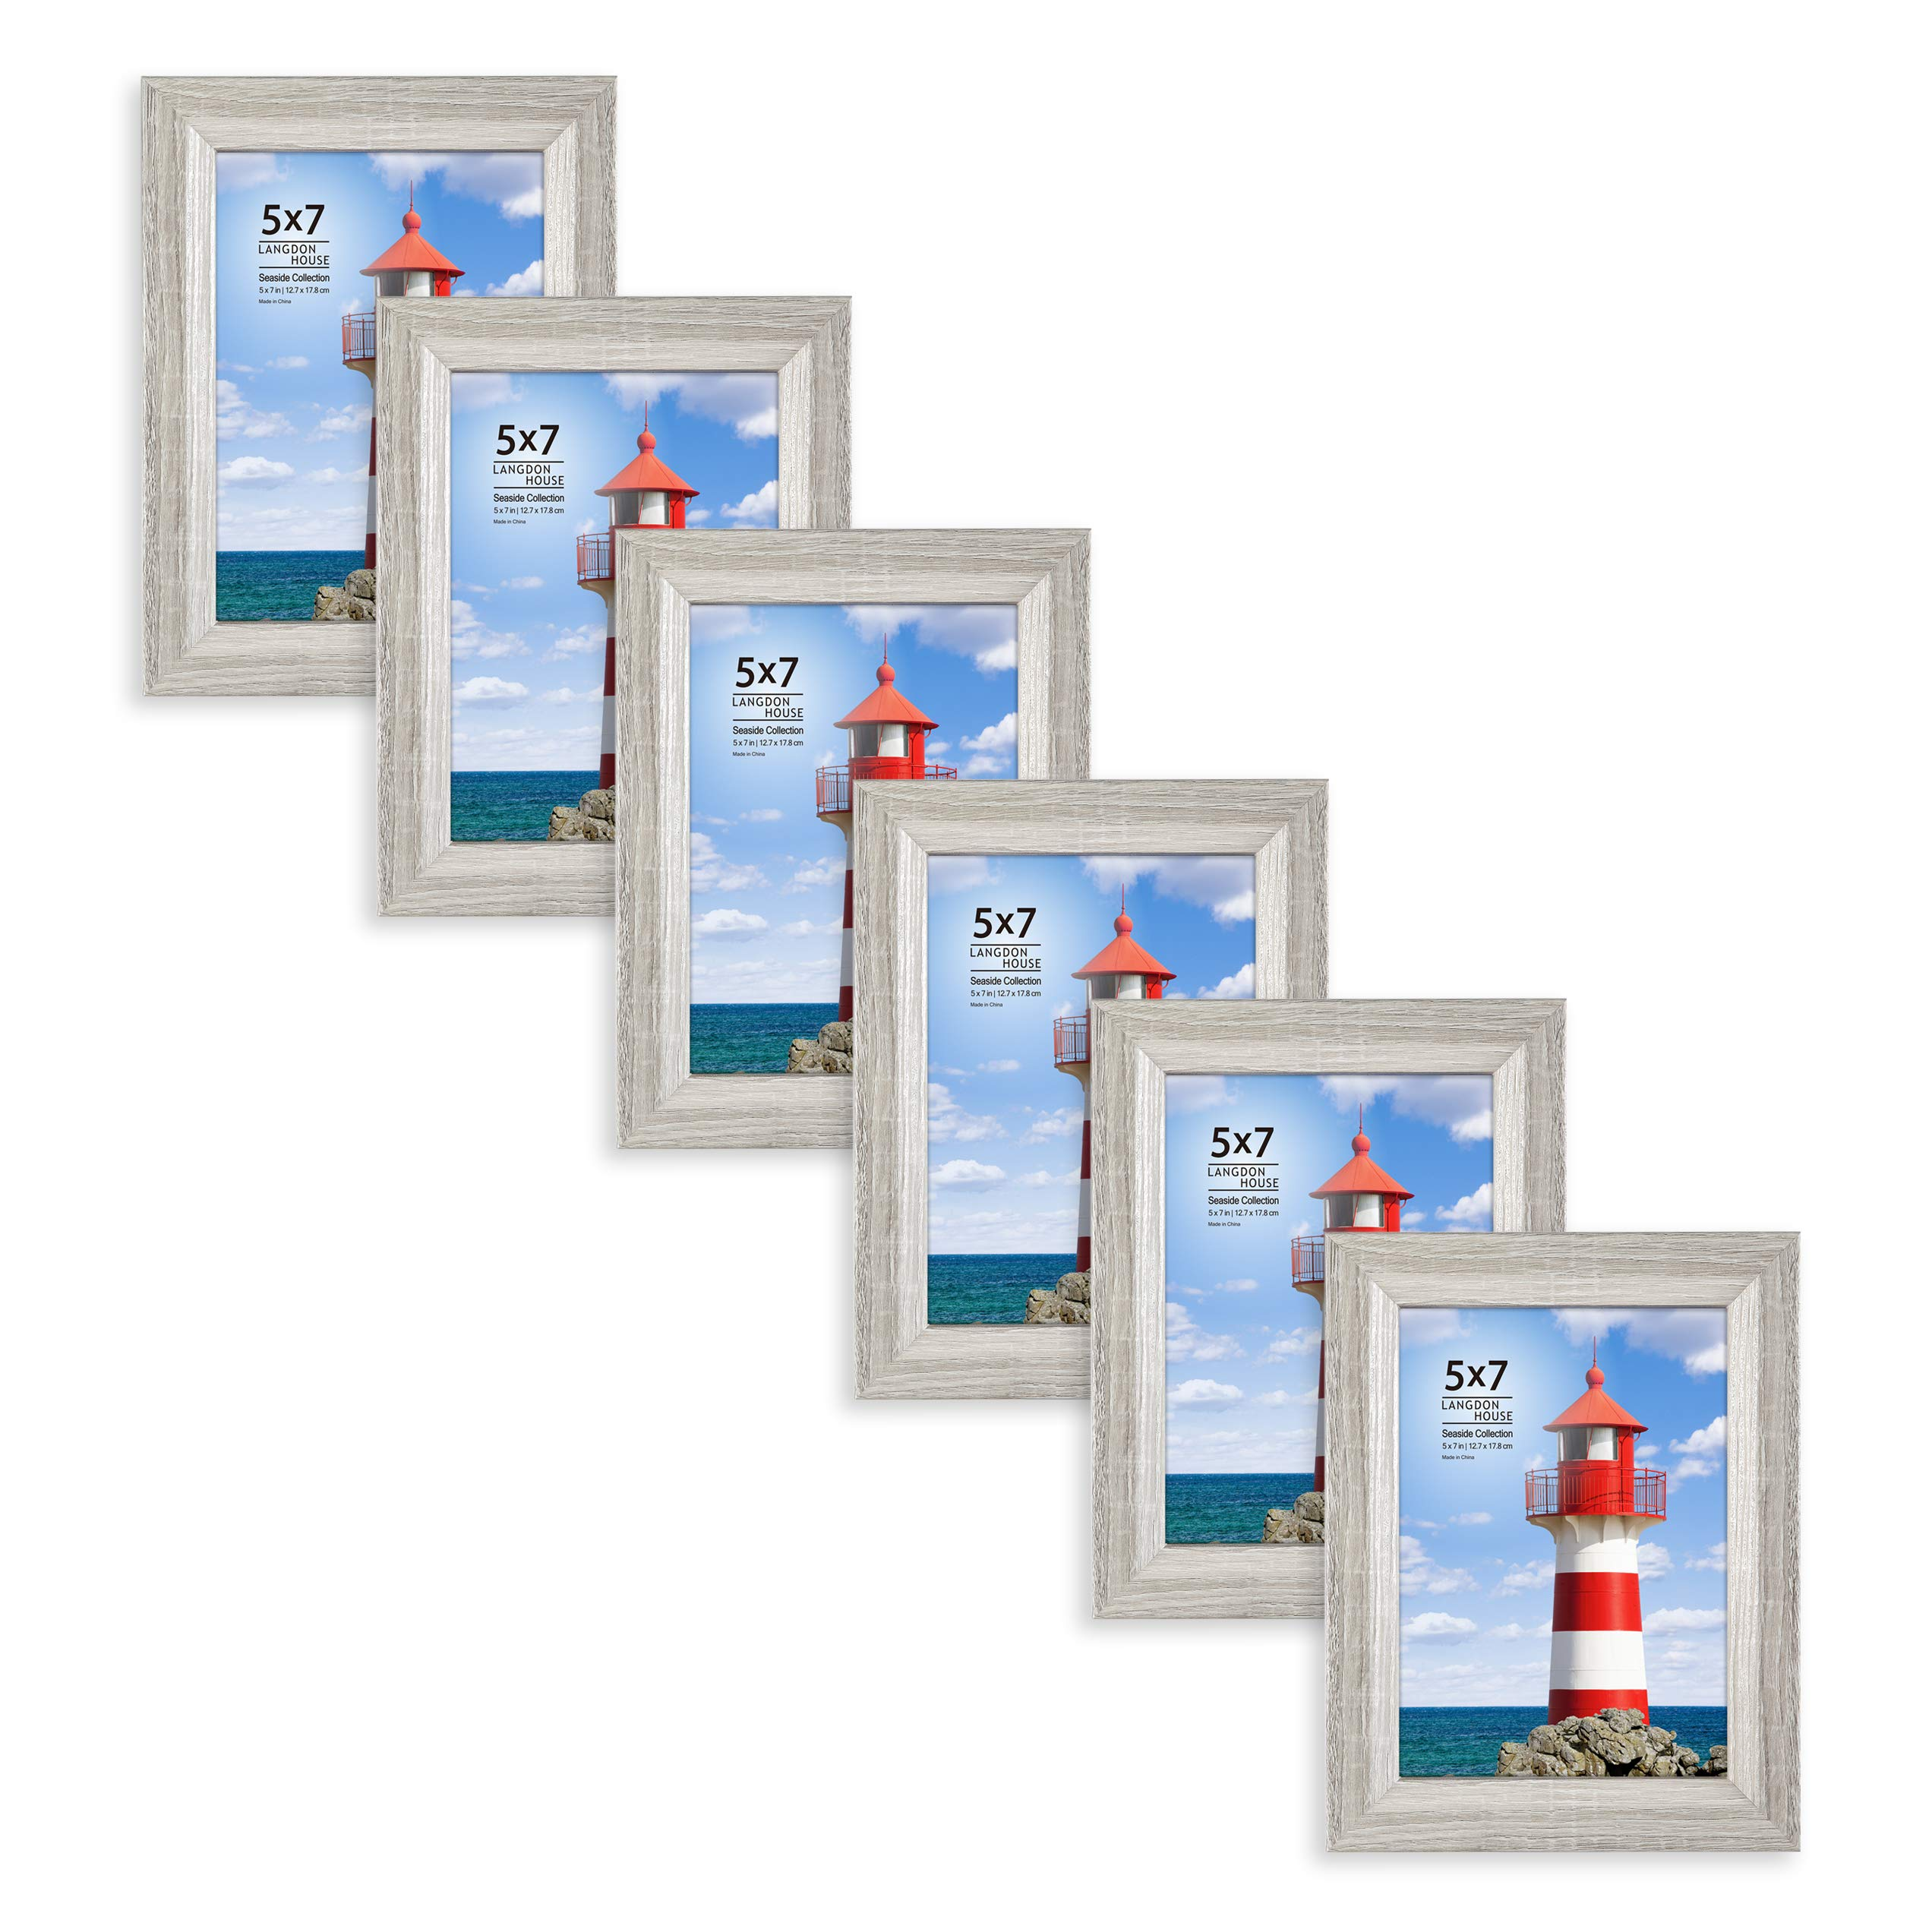 Langdons 5x7 Picture Frame (6 Pack, Gray), Sturdy Wood Composite Photo Frame 5 x 7, Wall Mount or Table Top, Set of 6 Seaside Collection by Langdons